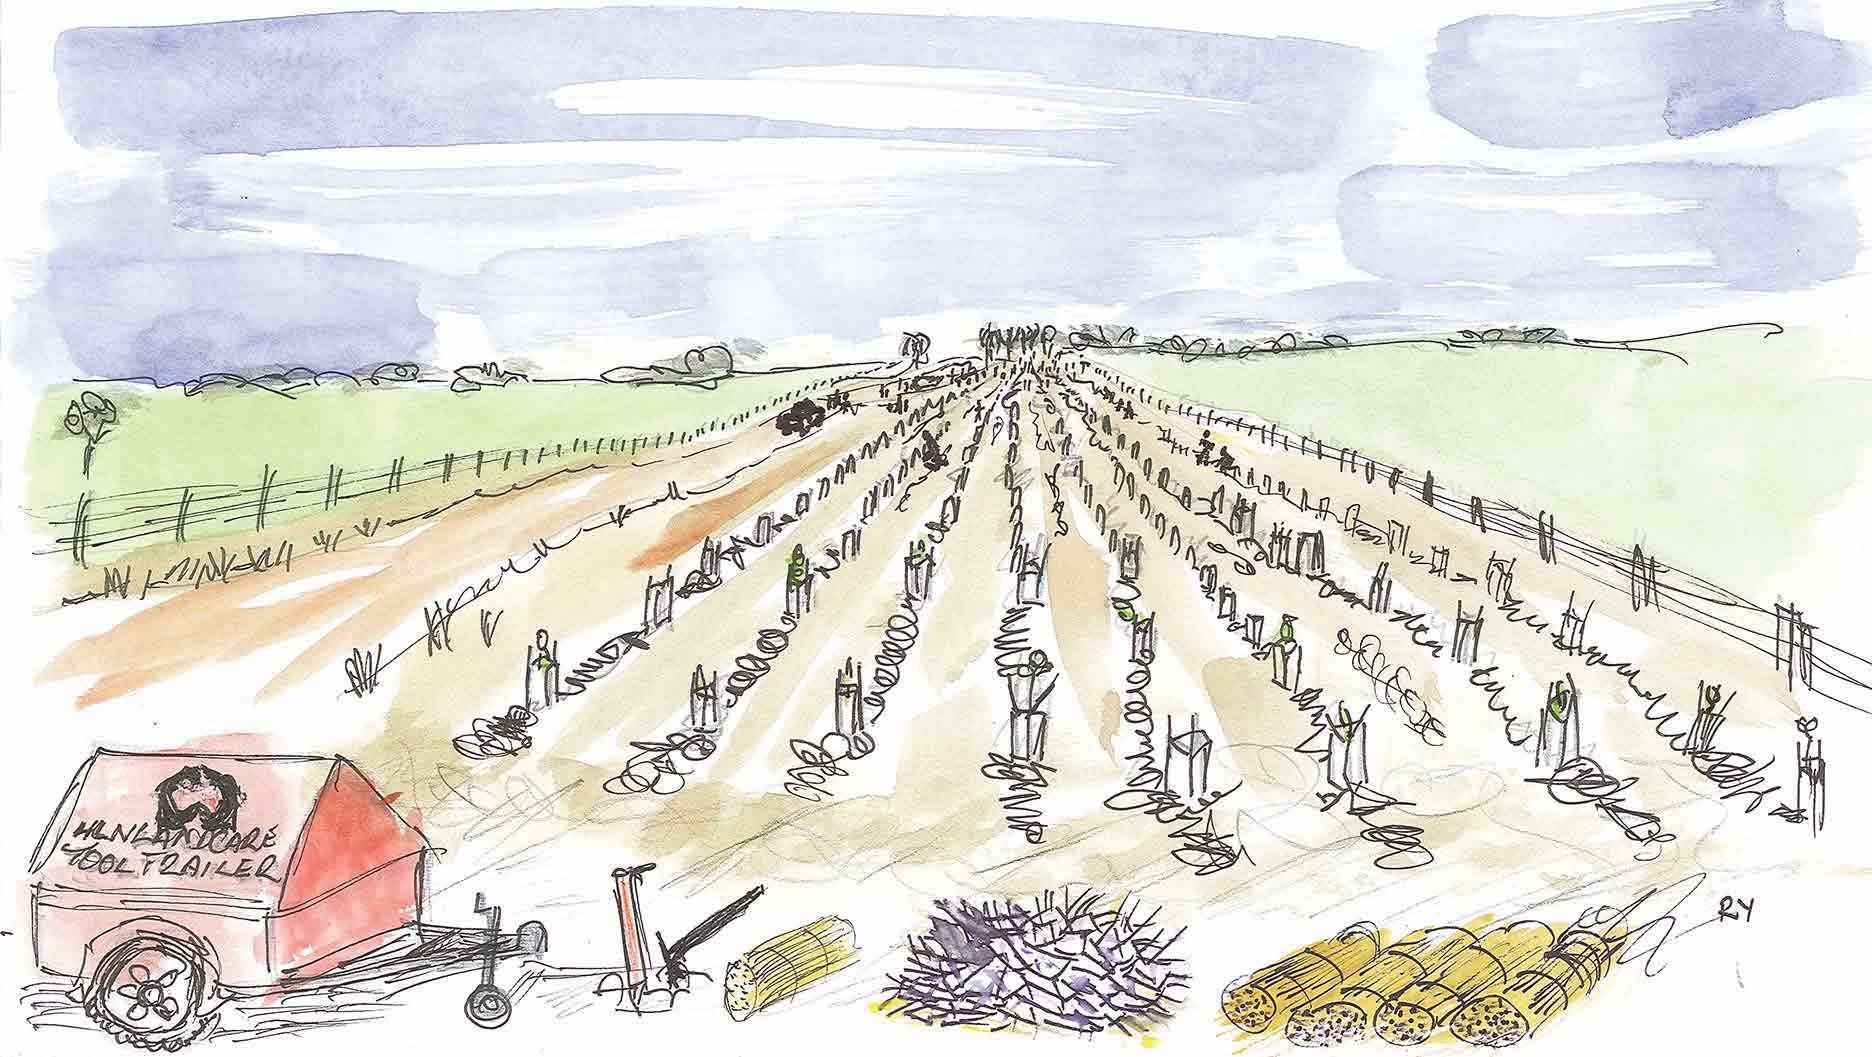 A Project Hindmarsh planting day at Nhill in 2012. Illustration by Rob Youl.